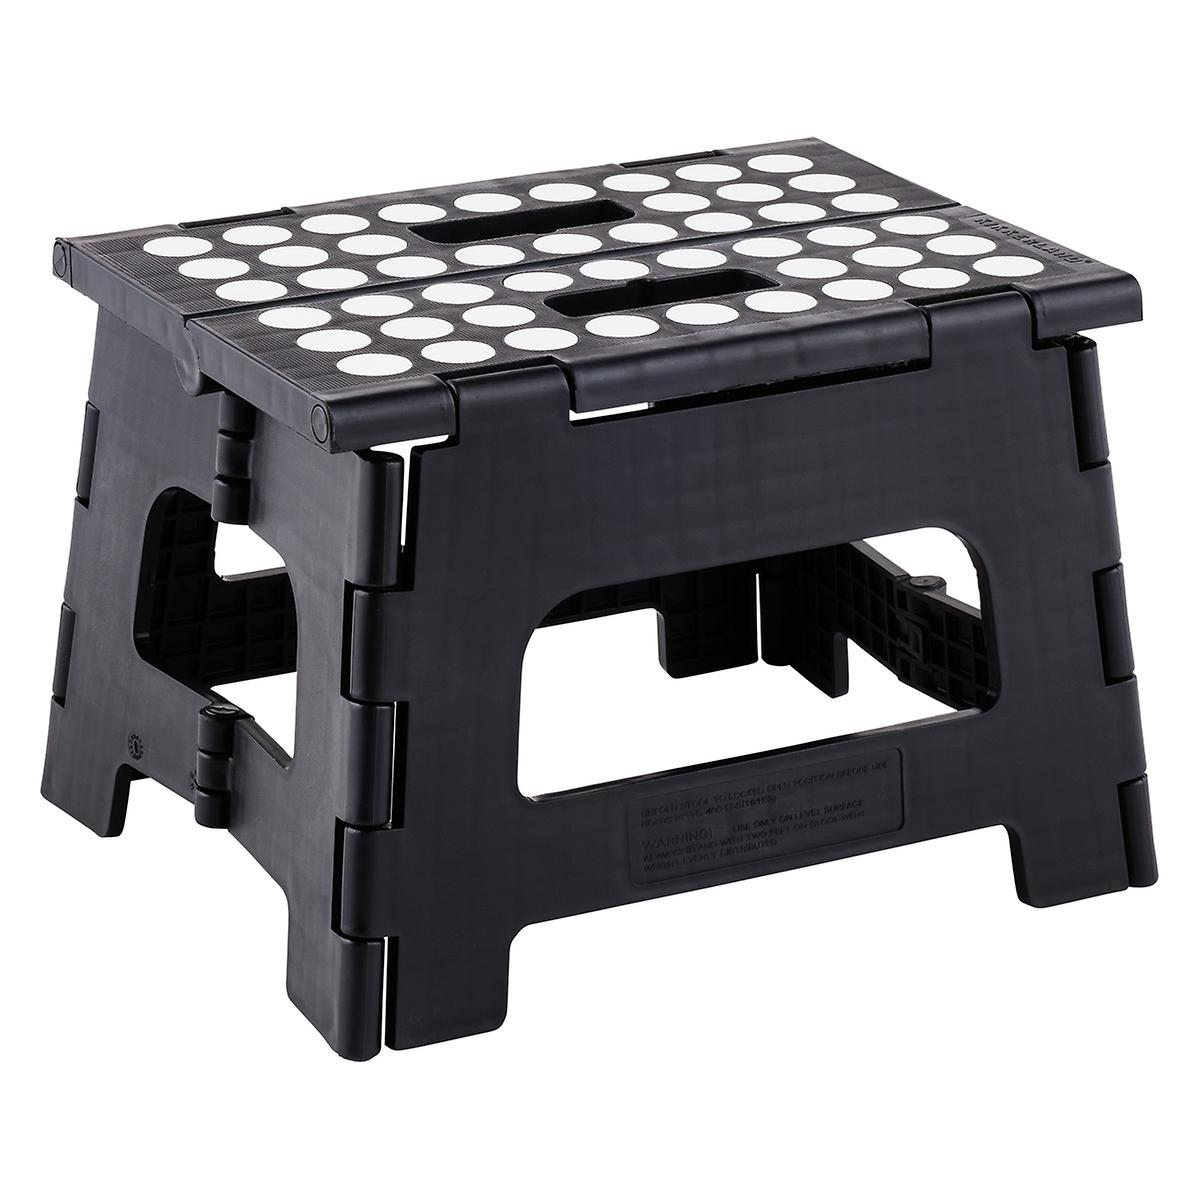 Folding Step Stool Black Easy Folding Step Stool The